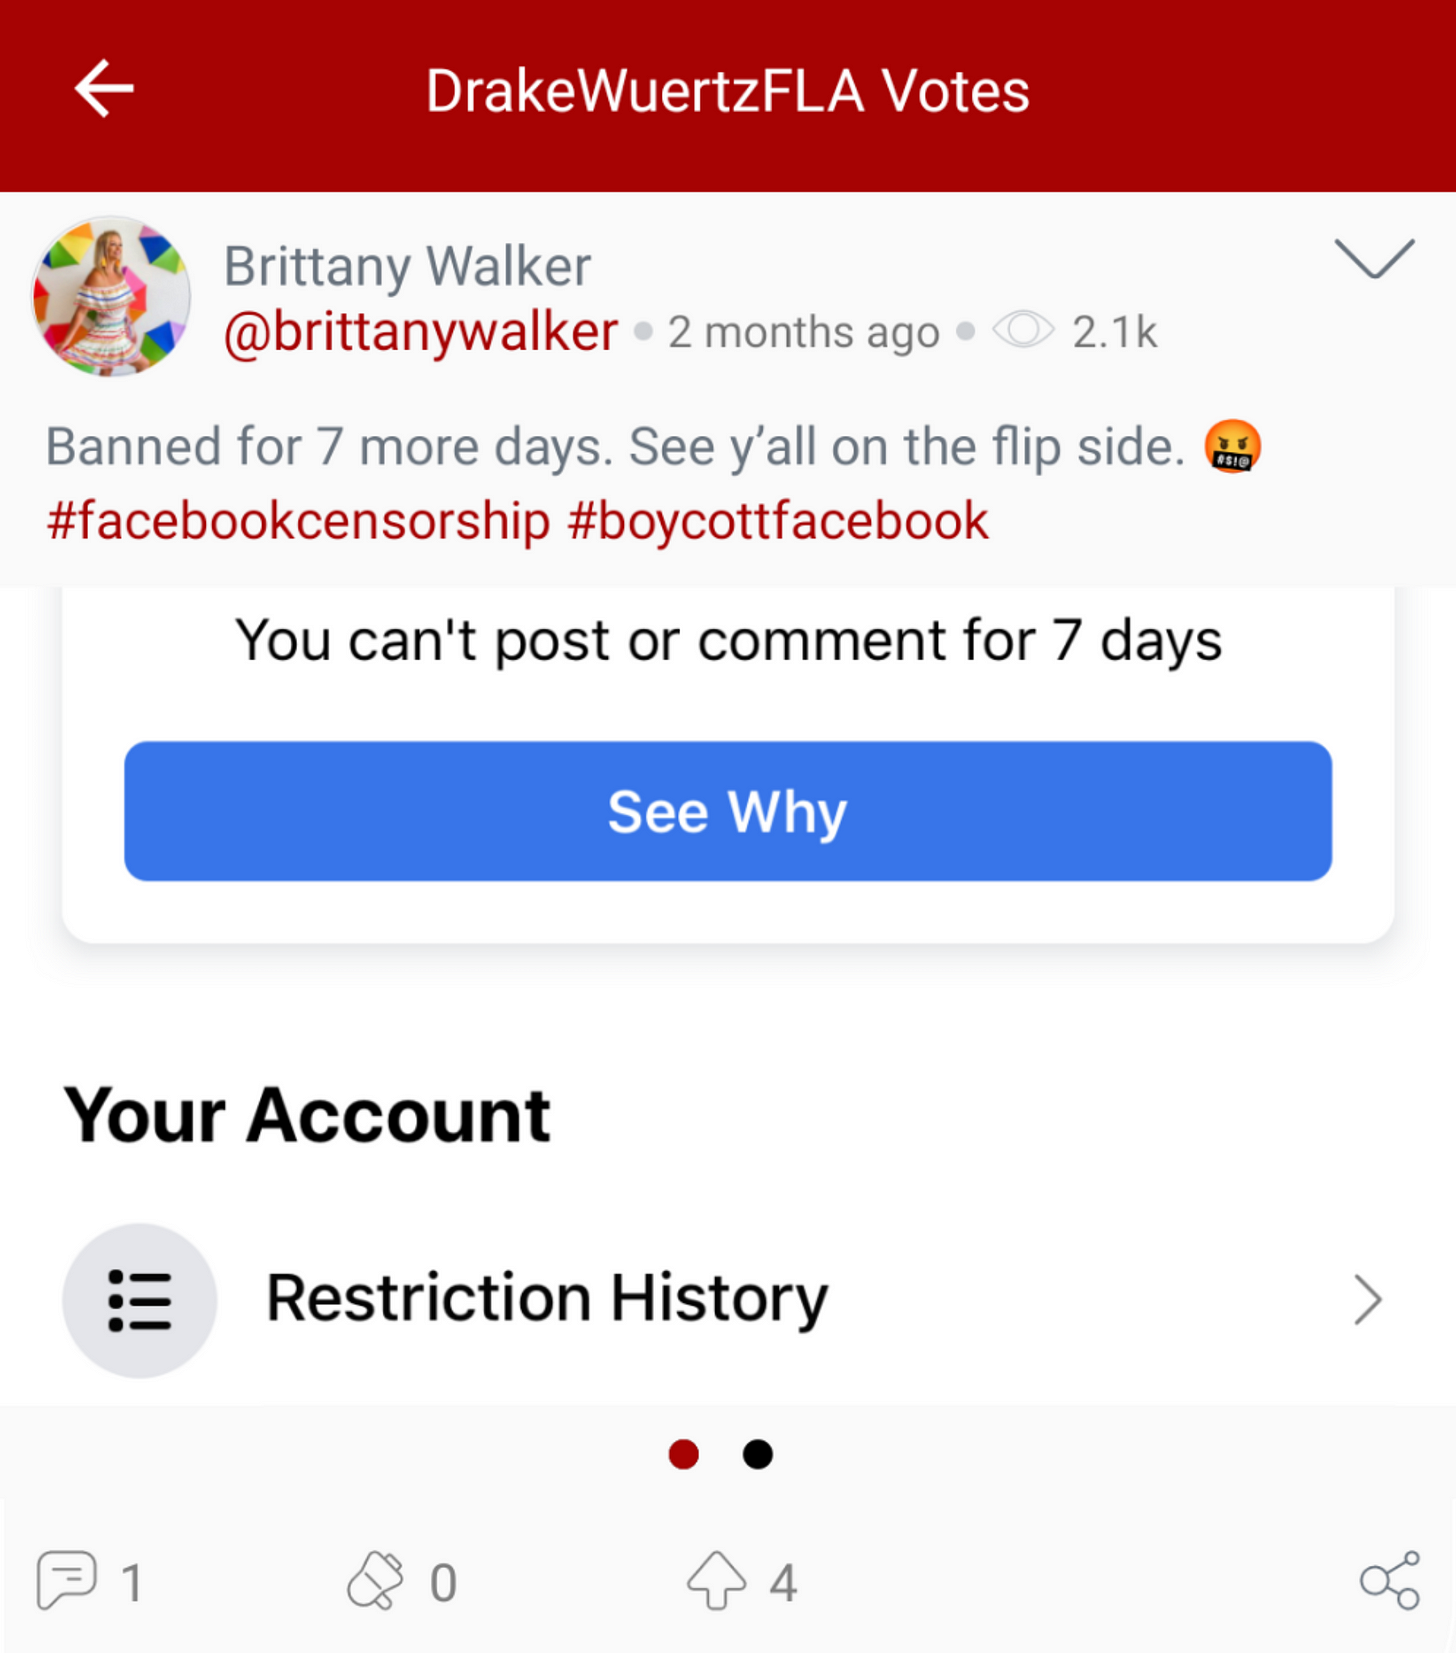 "Drake Wuertz ""votes"" Brittany Walker complaining about her Facebook suspension. (Image: Parler screenshot.)@DrakeWuertzFLA ""votes"" Brittany Walker complaining about her Facebook suspension. (Image: Parler screenshot.)"